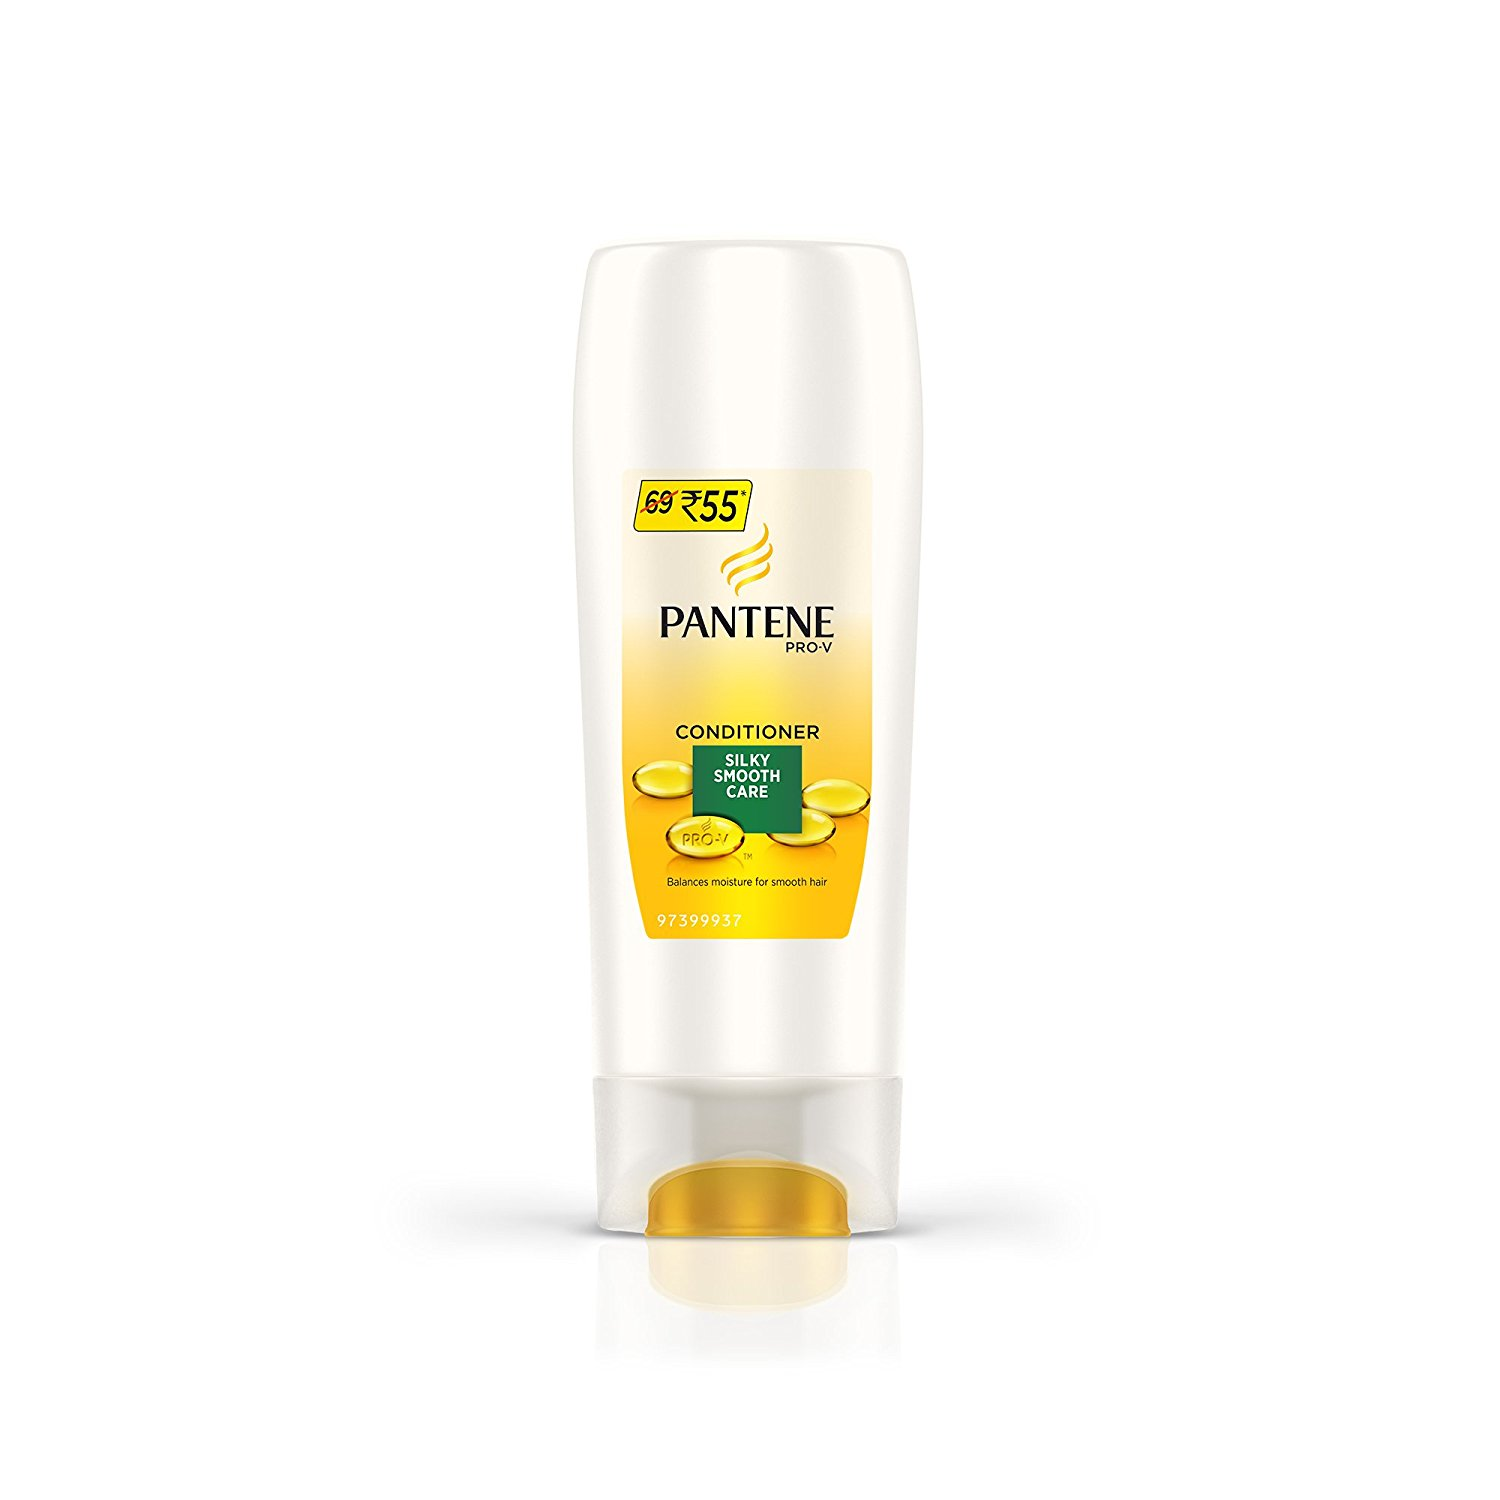 Pantene Conditioner Silky Smooth Care 90ml